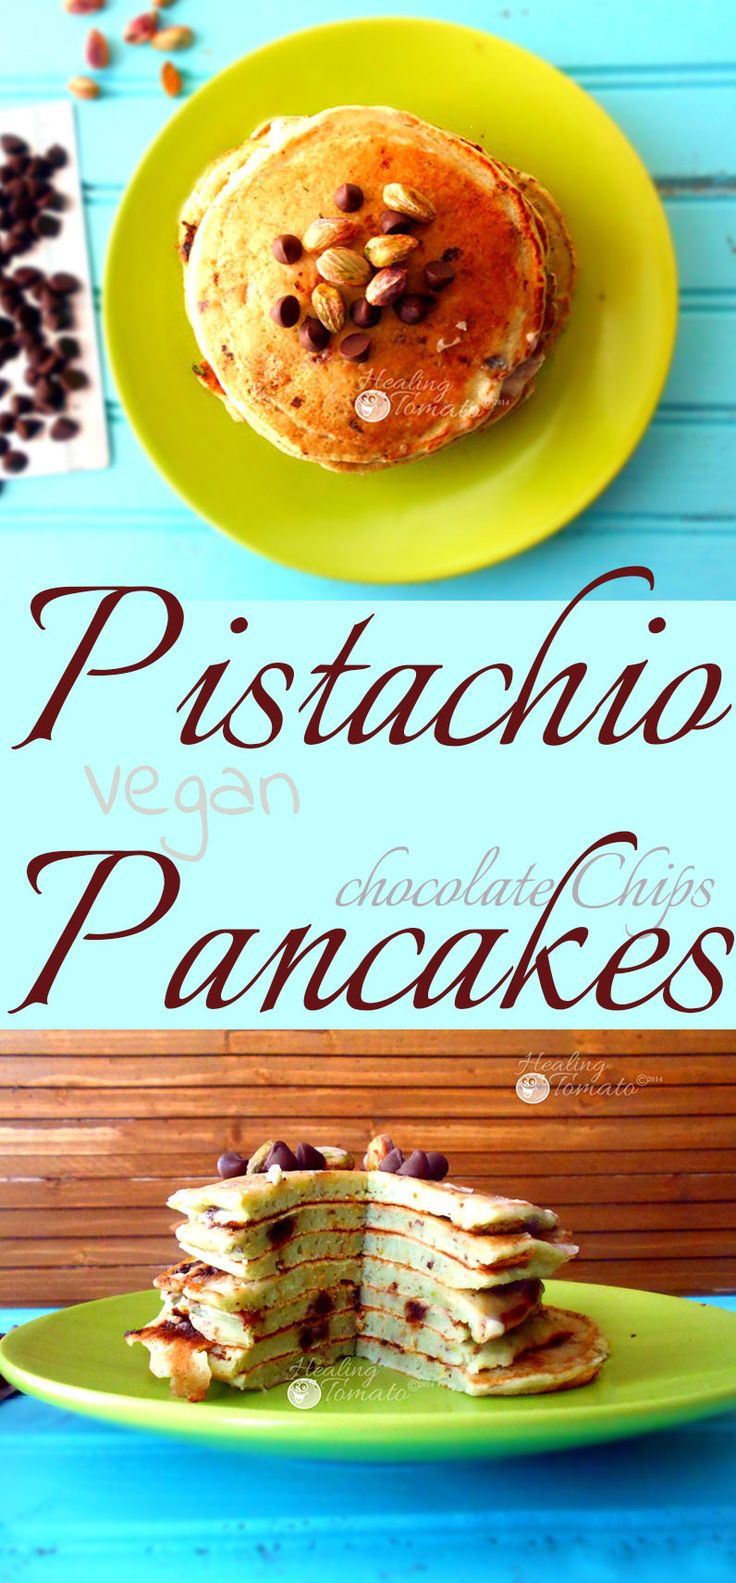 Vegan pancakes made with Pistachios, Chocolate chips, Almond milk and Flax Seed meal. No Eggs, No milk. Delicious Flavors.